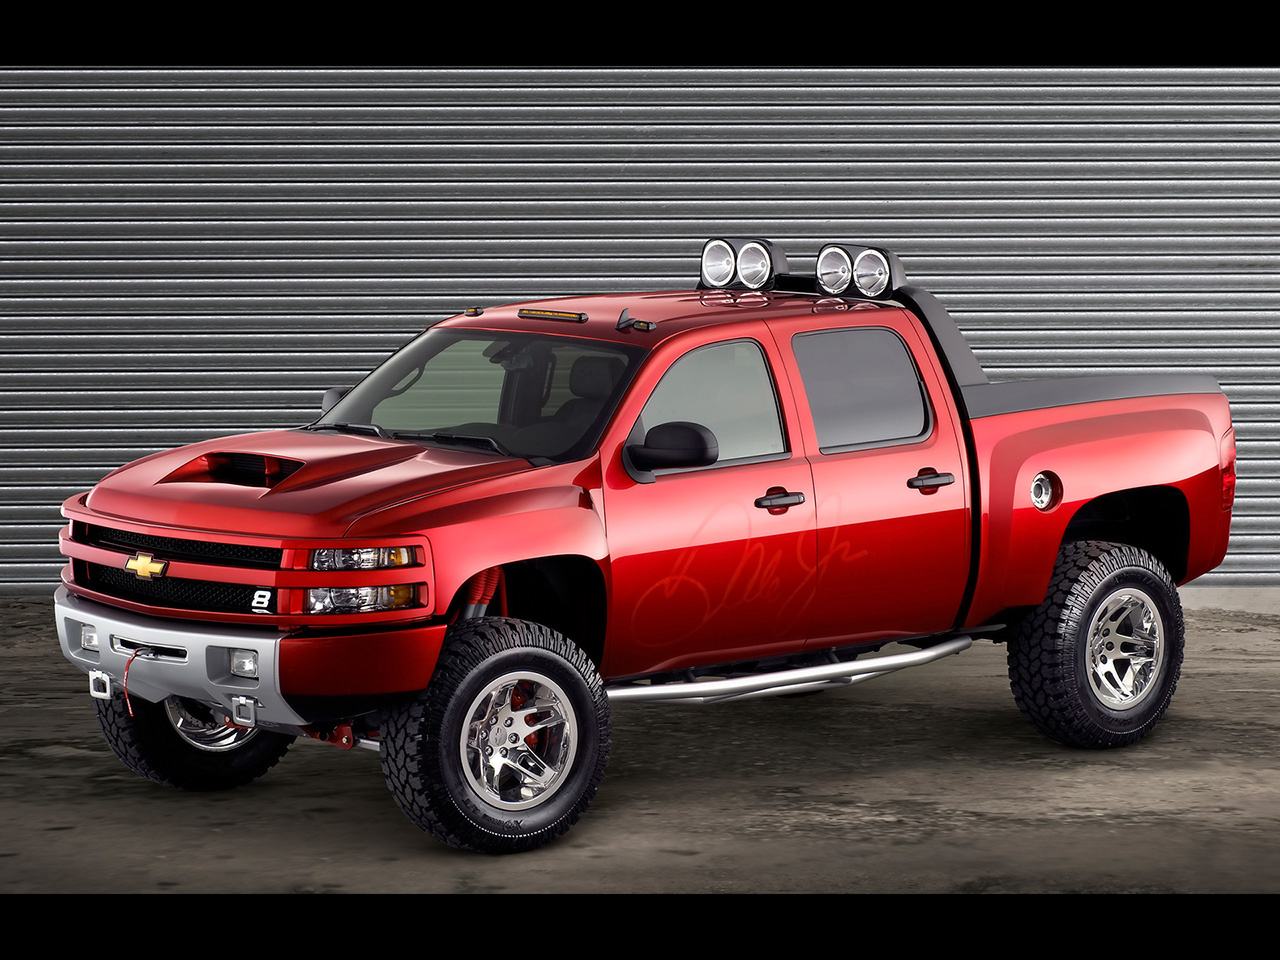 2007 chevrolet silverado 1500 overview cargurus. Black Bedroom Furniture Sets. Home Design Ideas